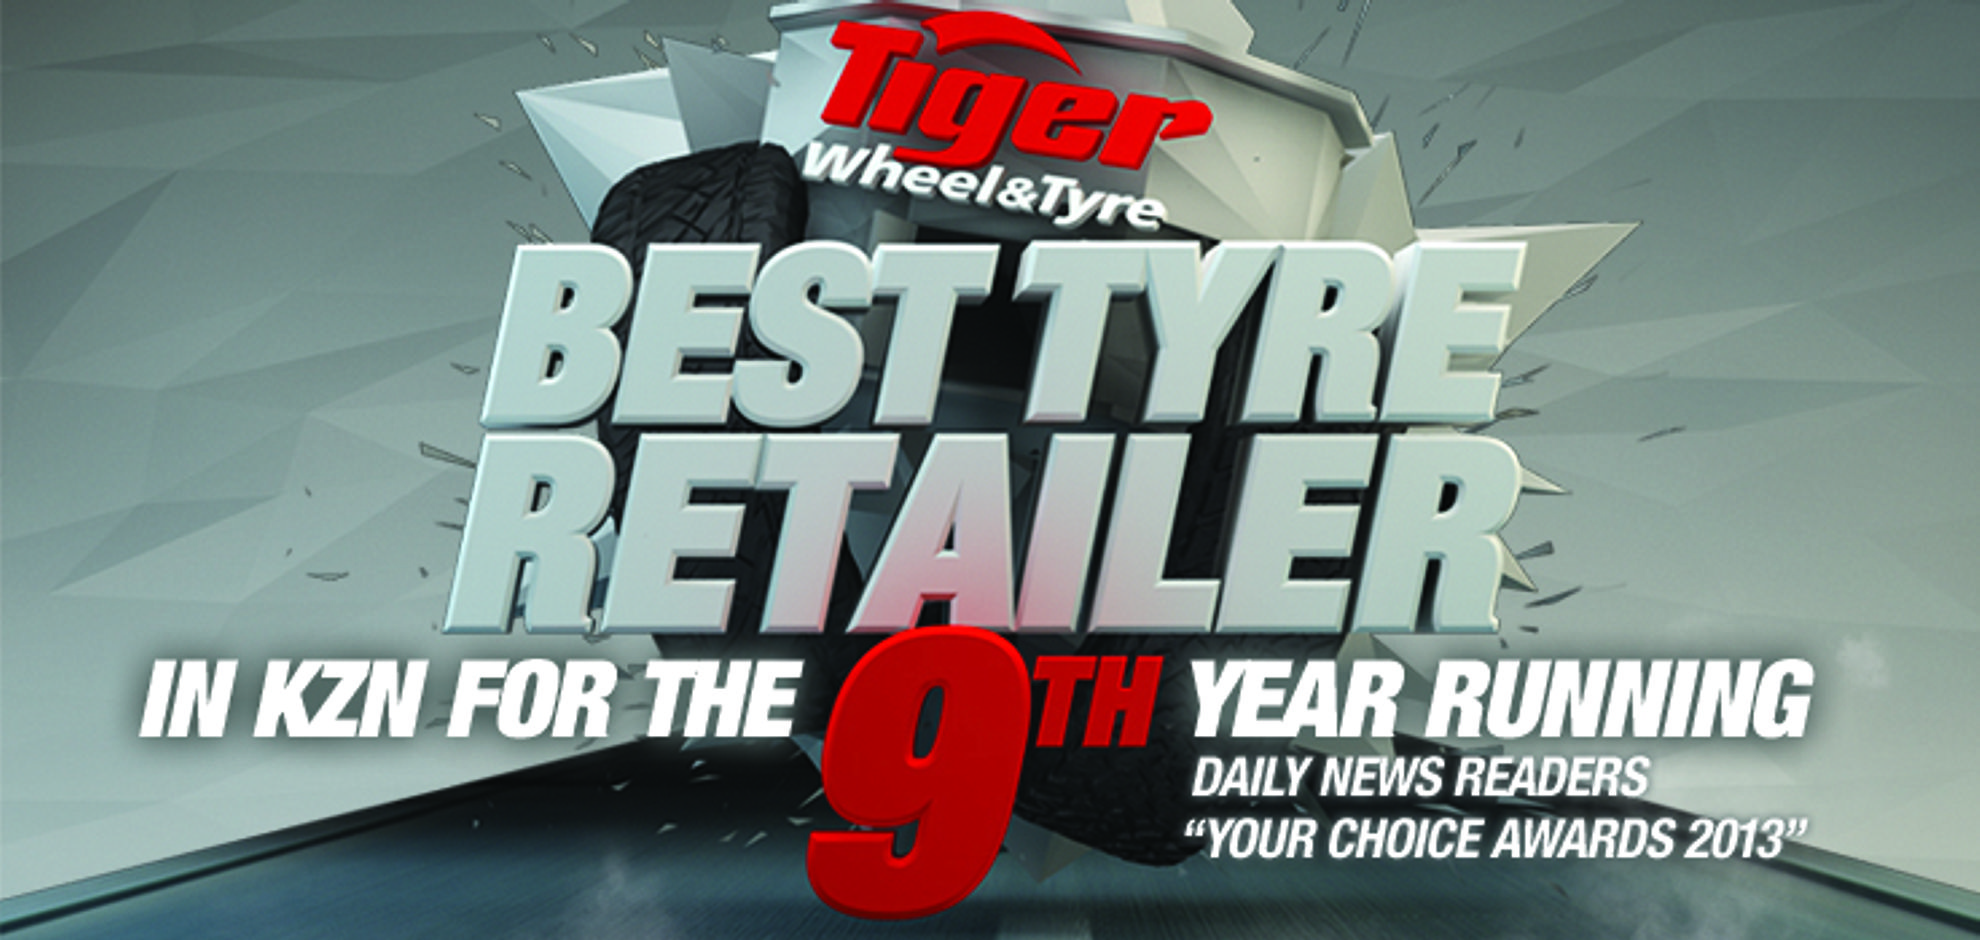 Tiger Wheel and Tyres